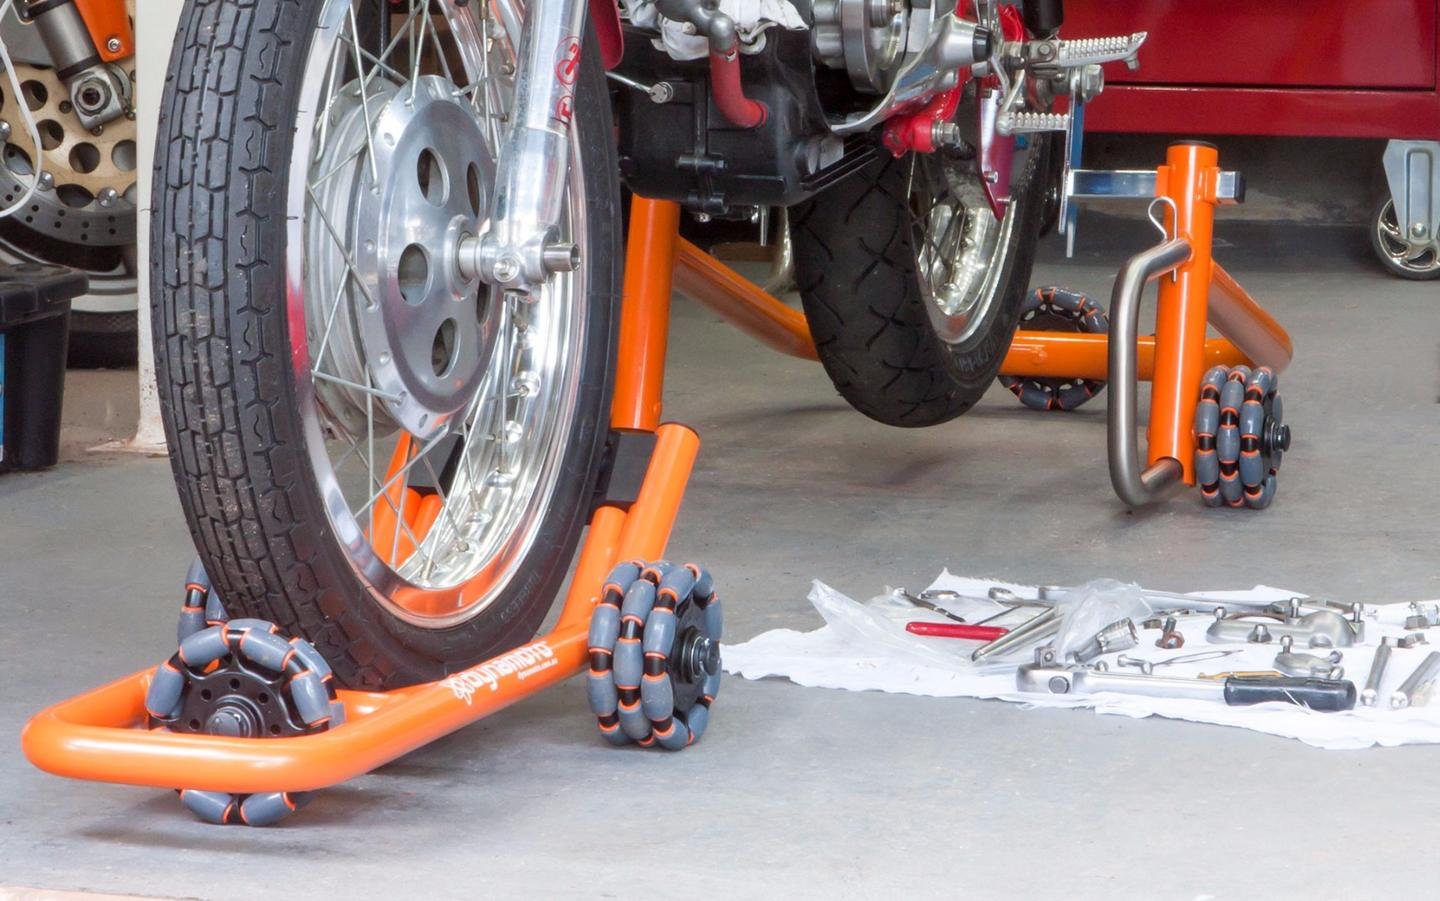 Dynamoto's front stand scoots under the front wheel to lift the bike without the need for spools